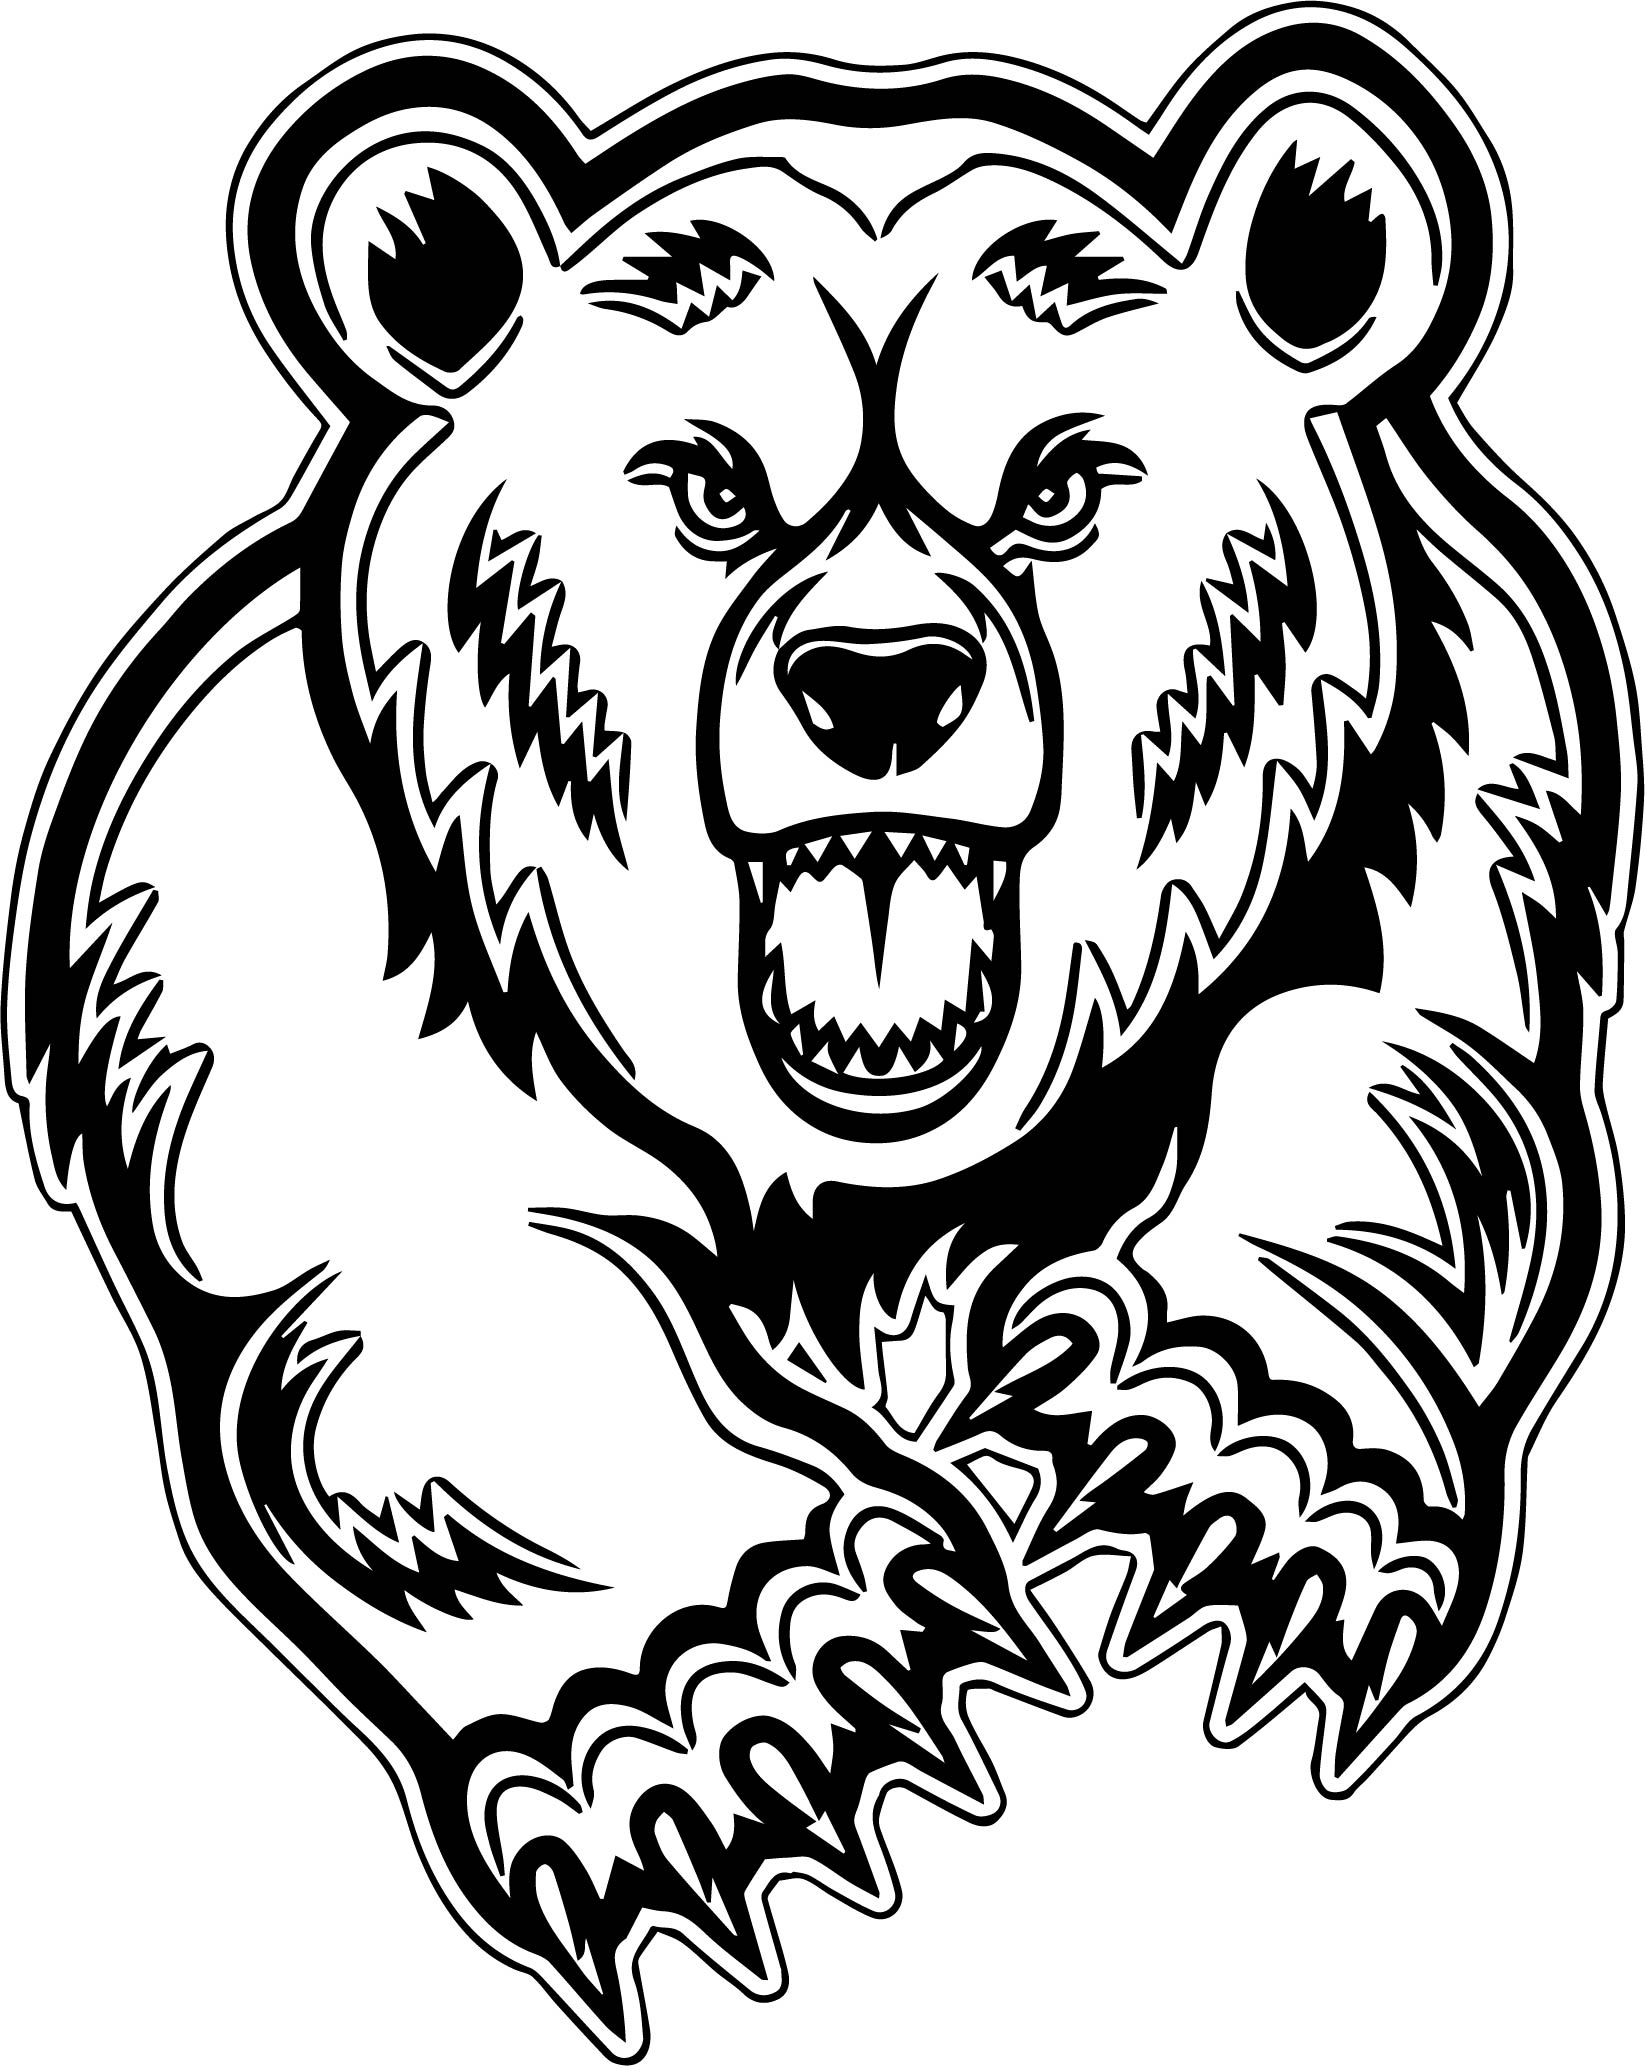 Bear Clipart, Coloring Pages, And Other Free Printable ...